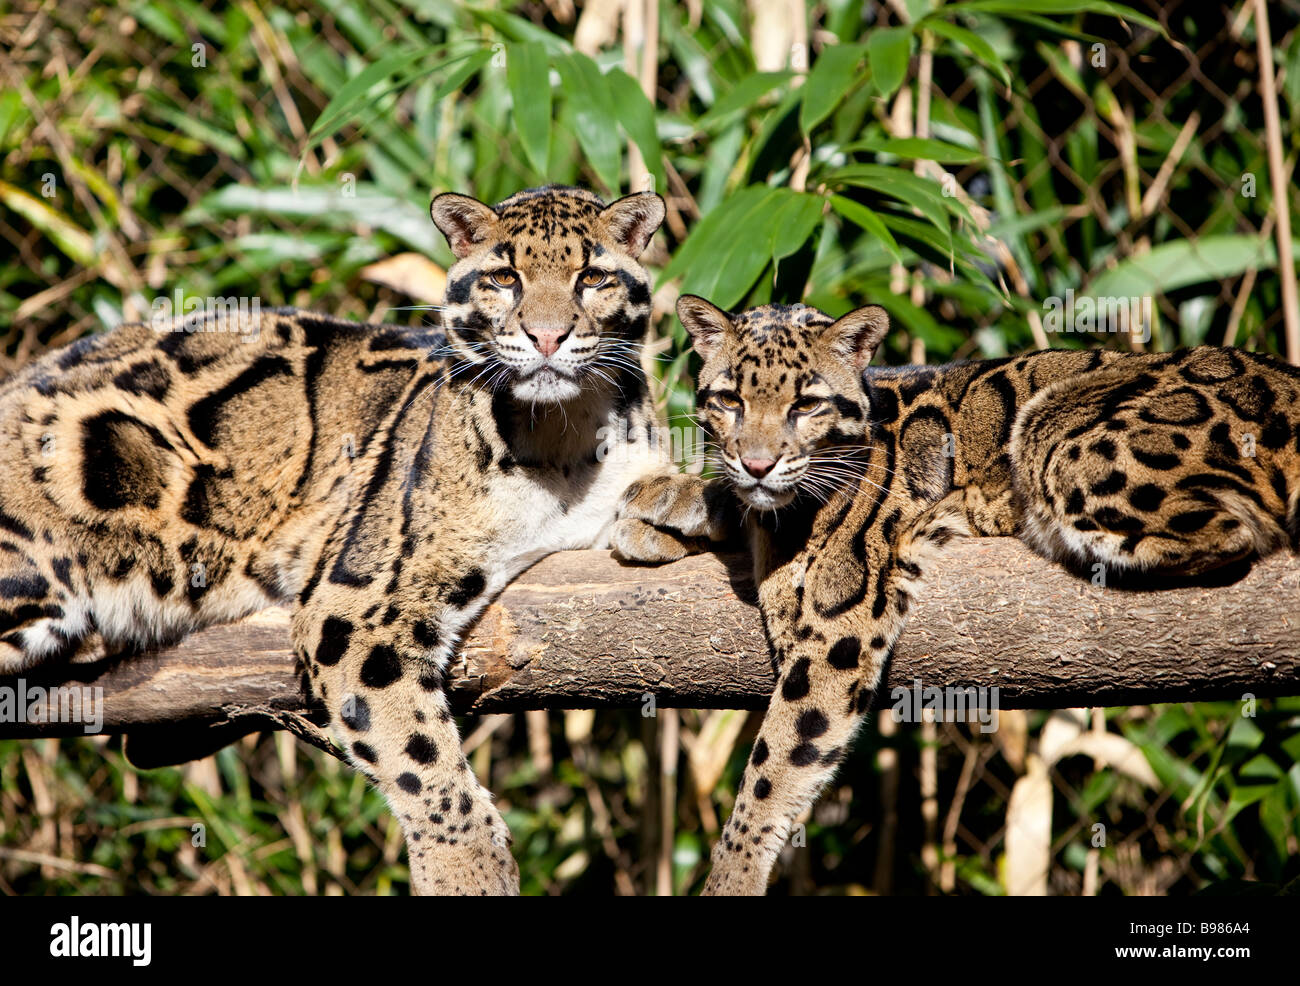 Clouded Leopards Neofelis nebuloso - Stock Image